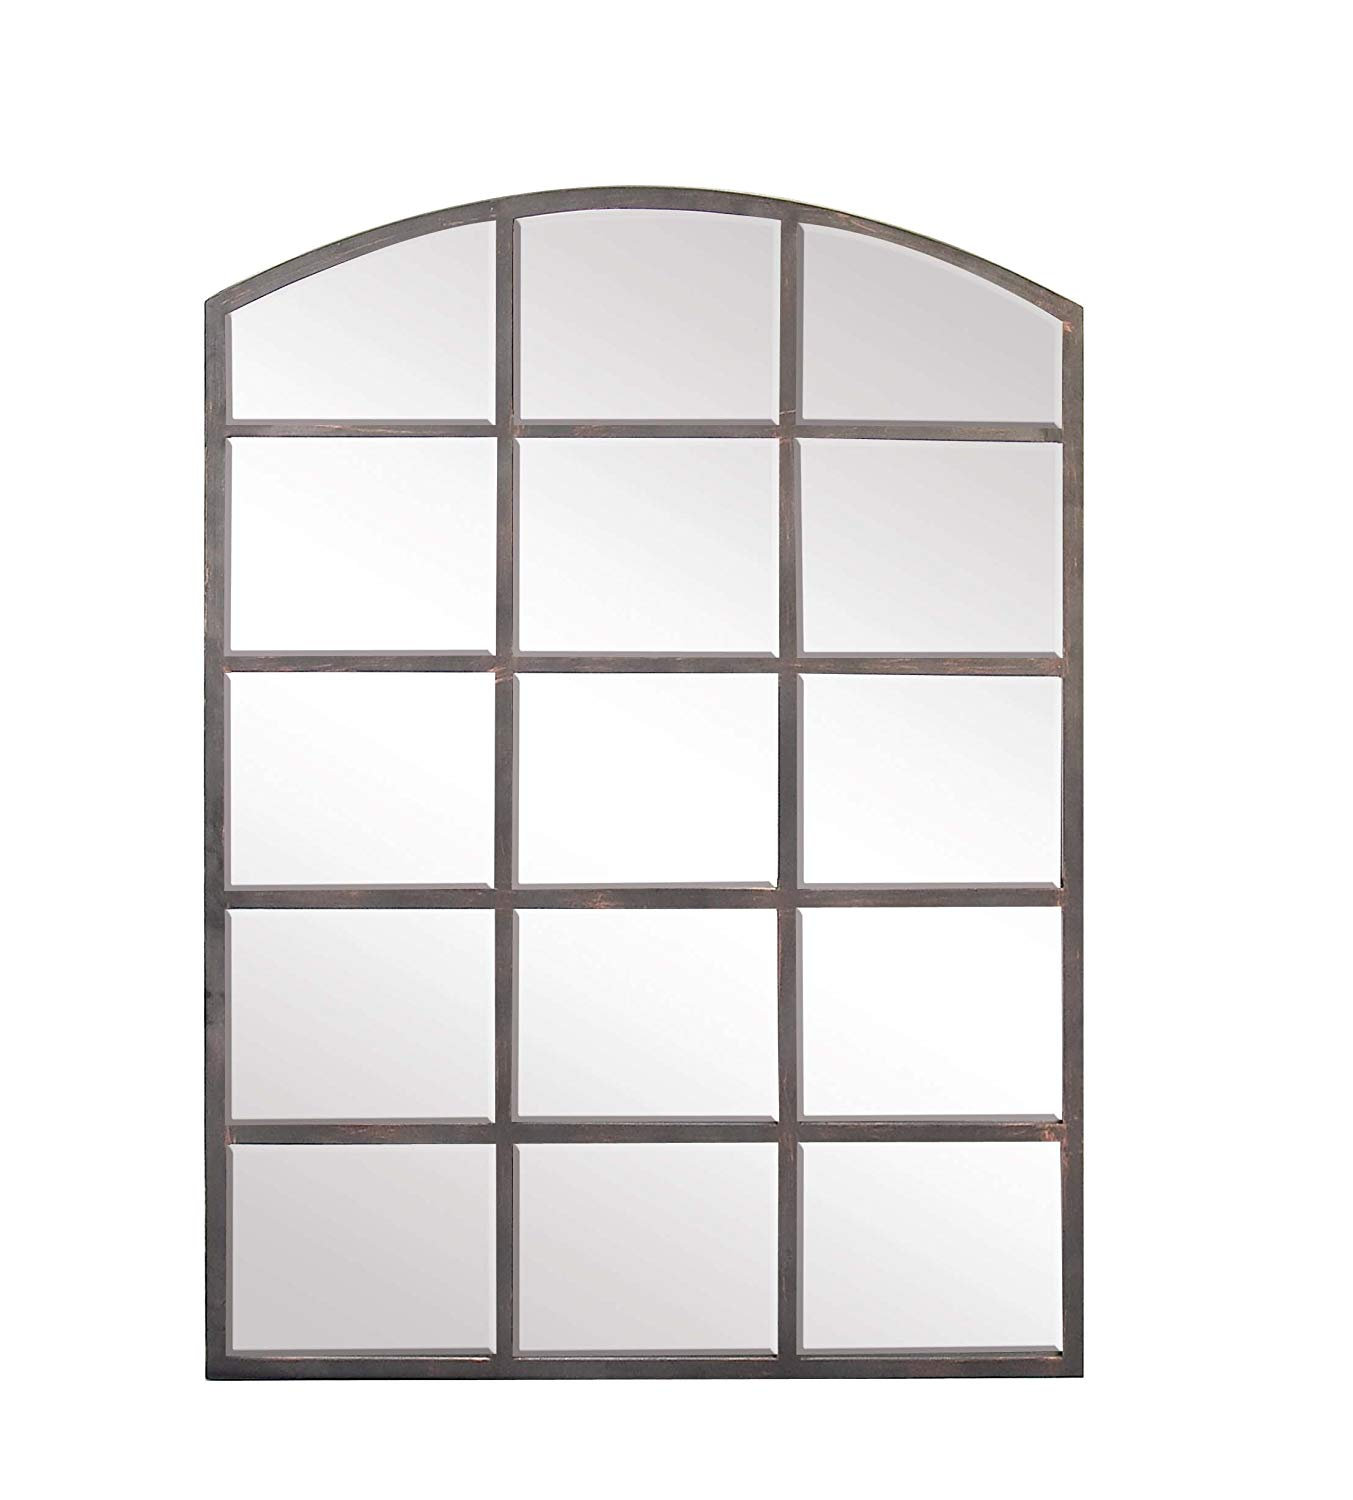 55c05166a651 Get Quotations · Deco 79 53393 Modern Wood and Iron Arched Window Paneled Glass  Wall Mirror